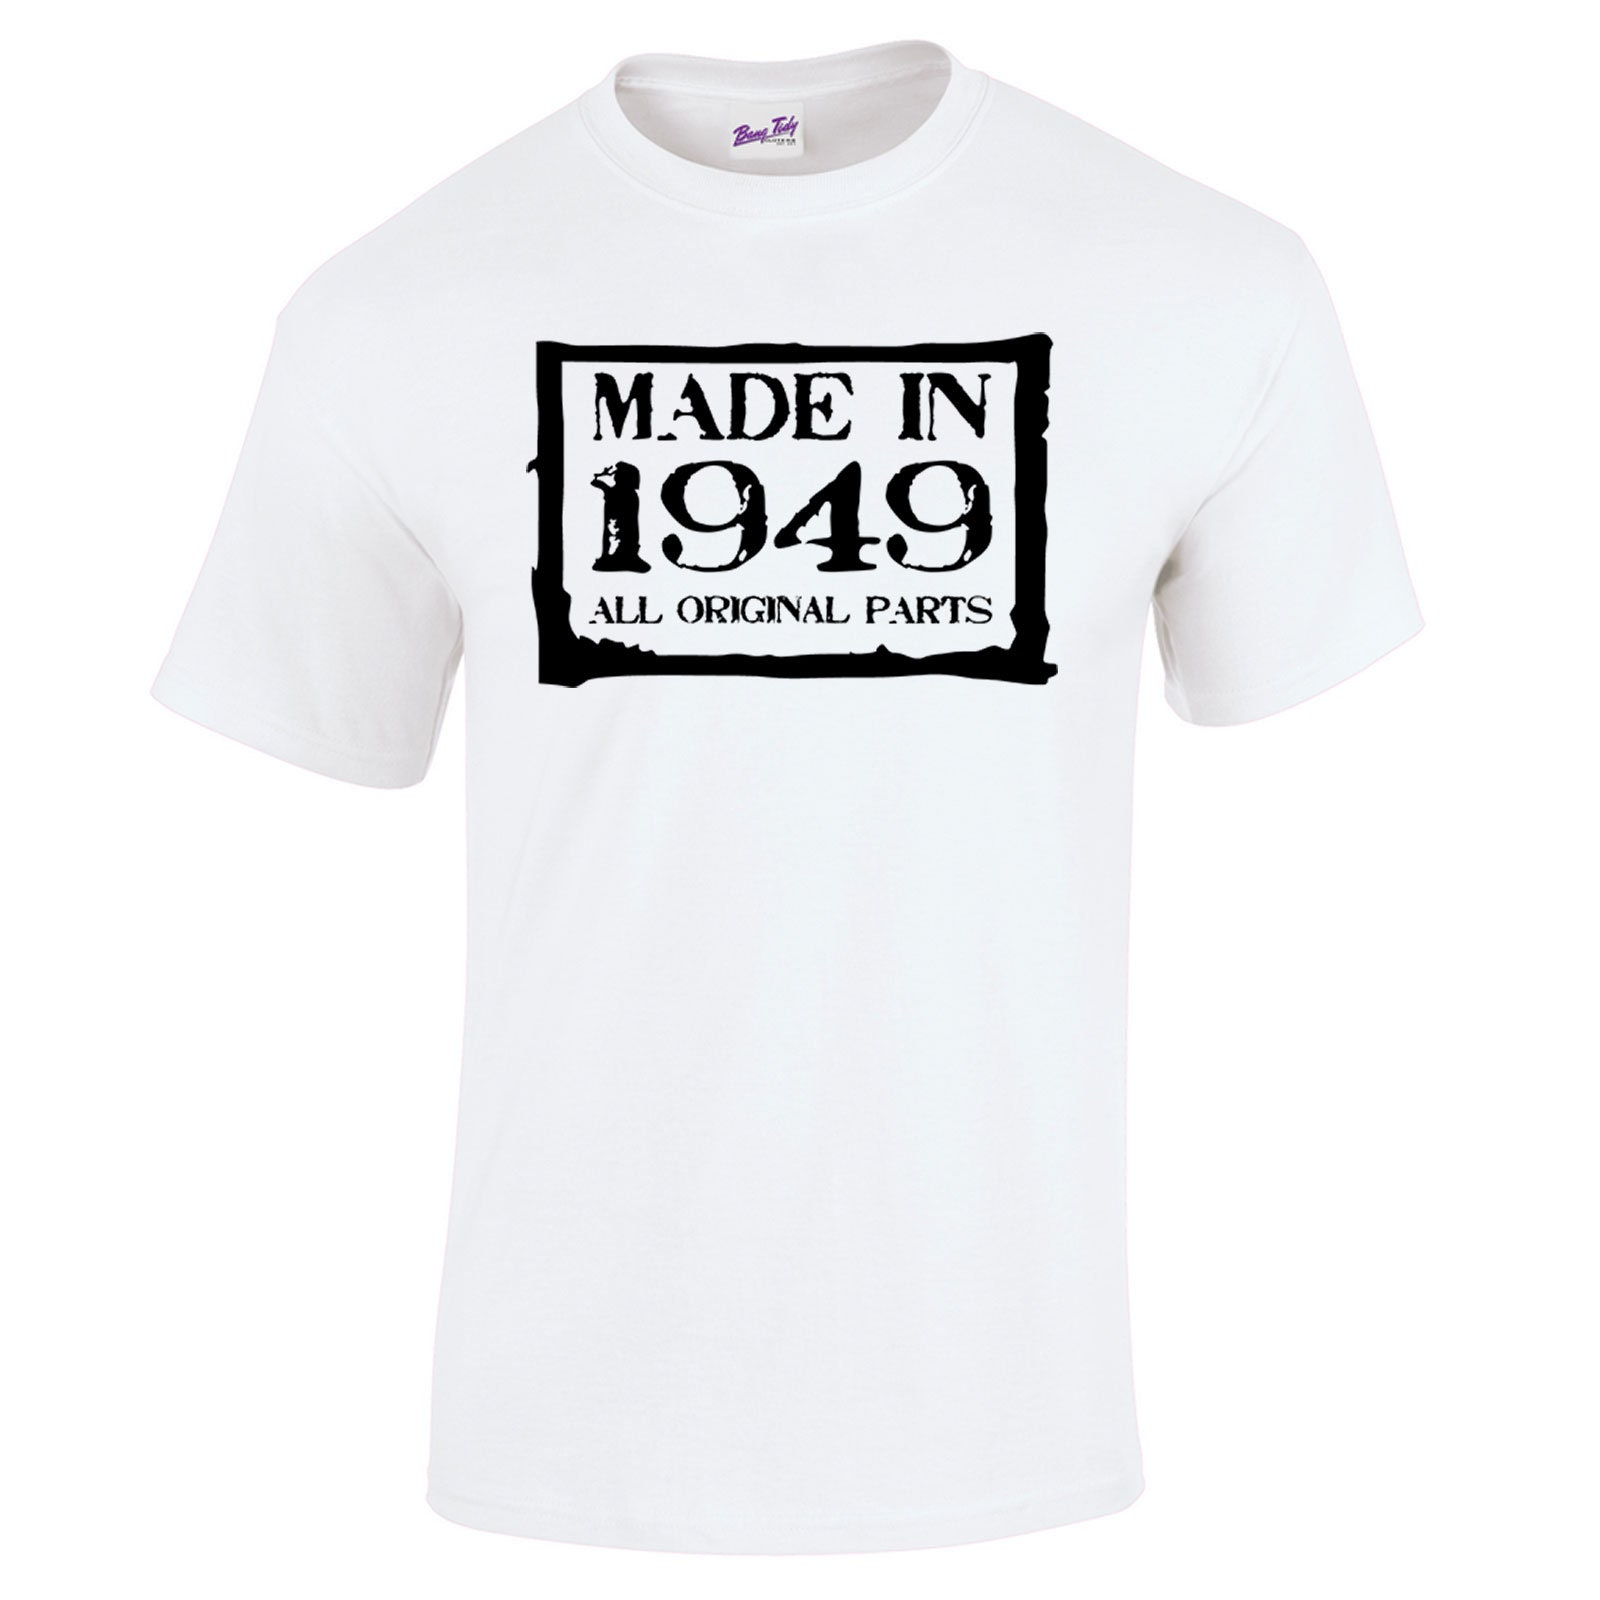 70th Birthday Gifts Presents Year 1948 Unisex Ringer Vintage T Shirt Aged To Old Shirts